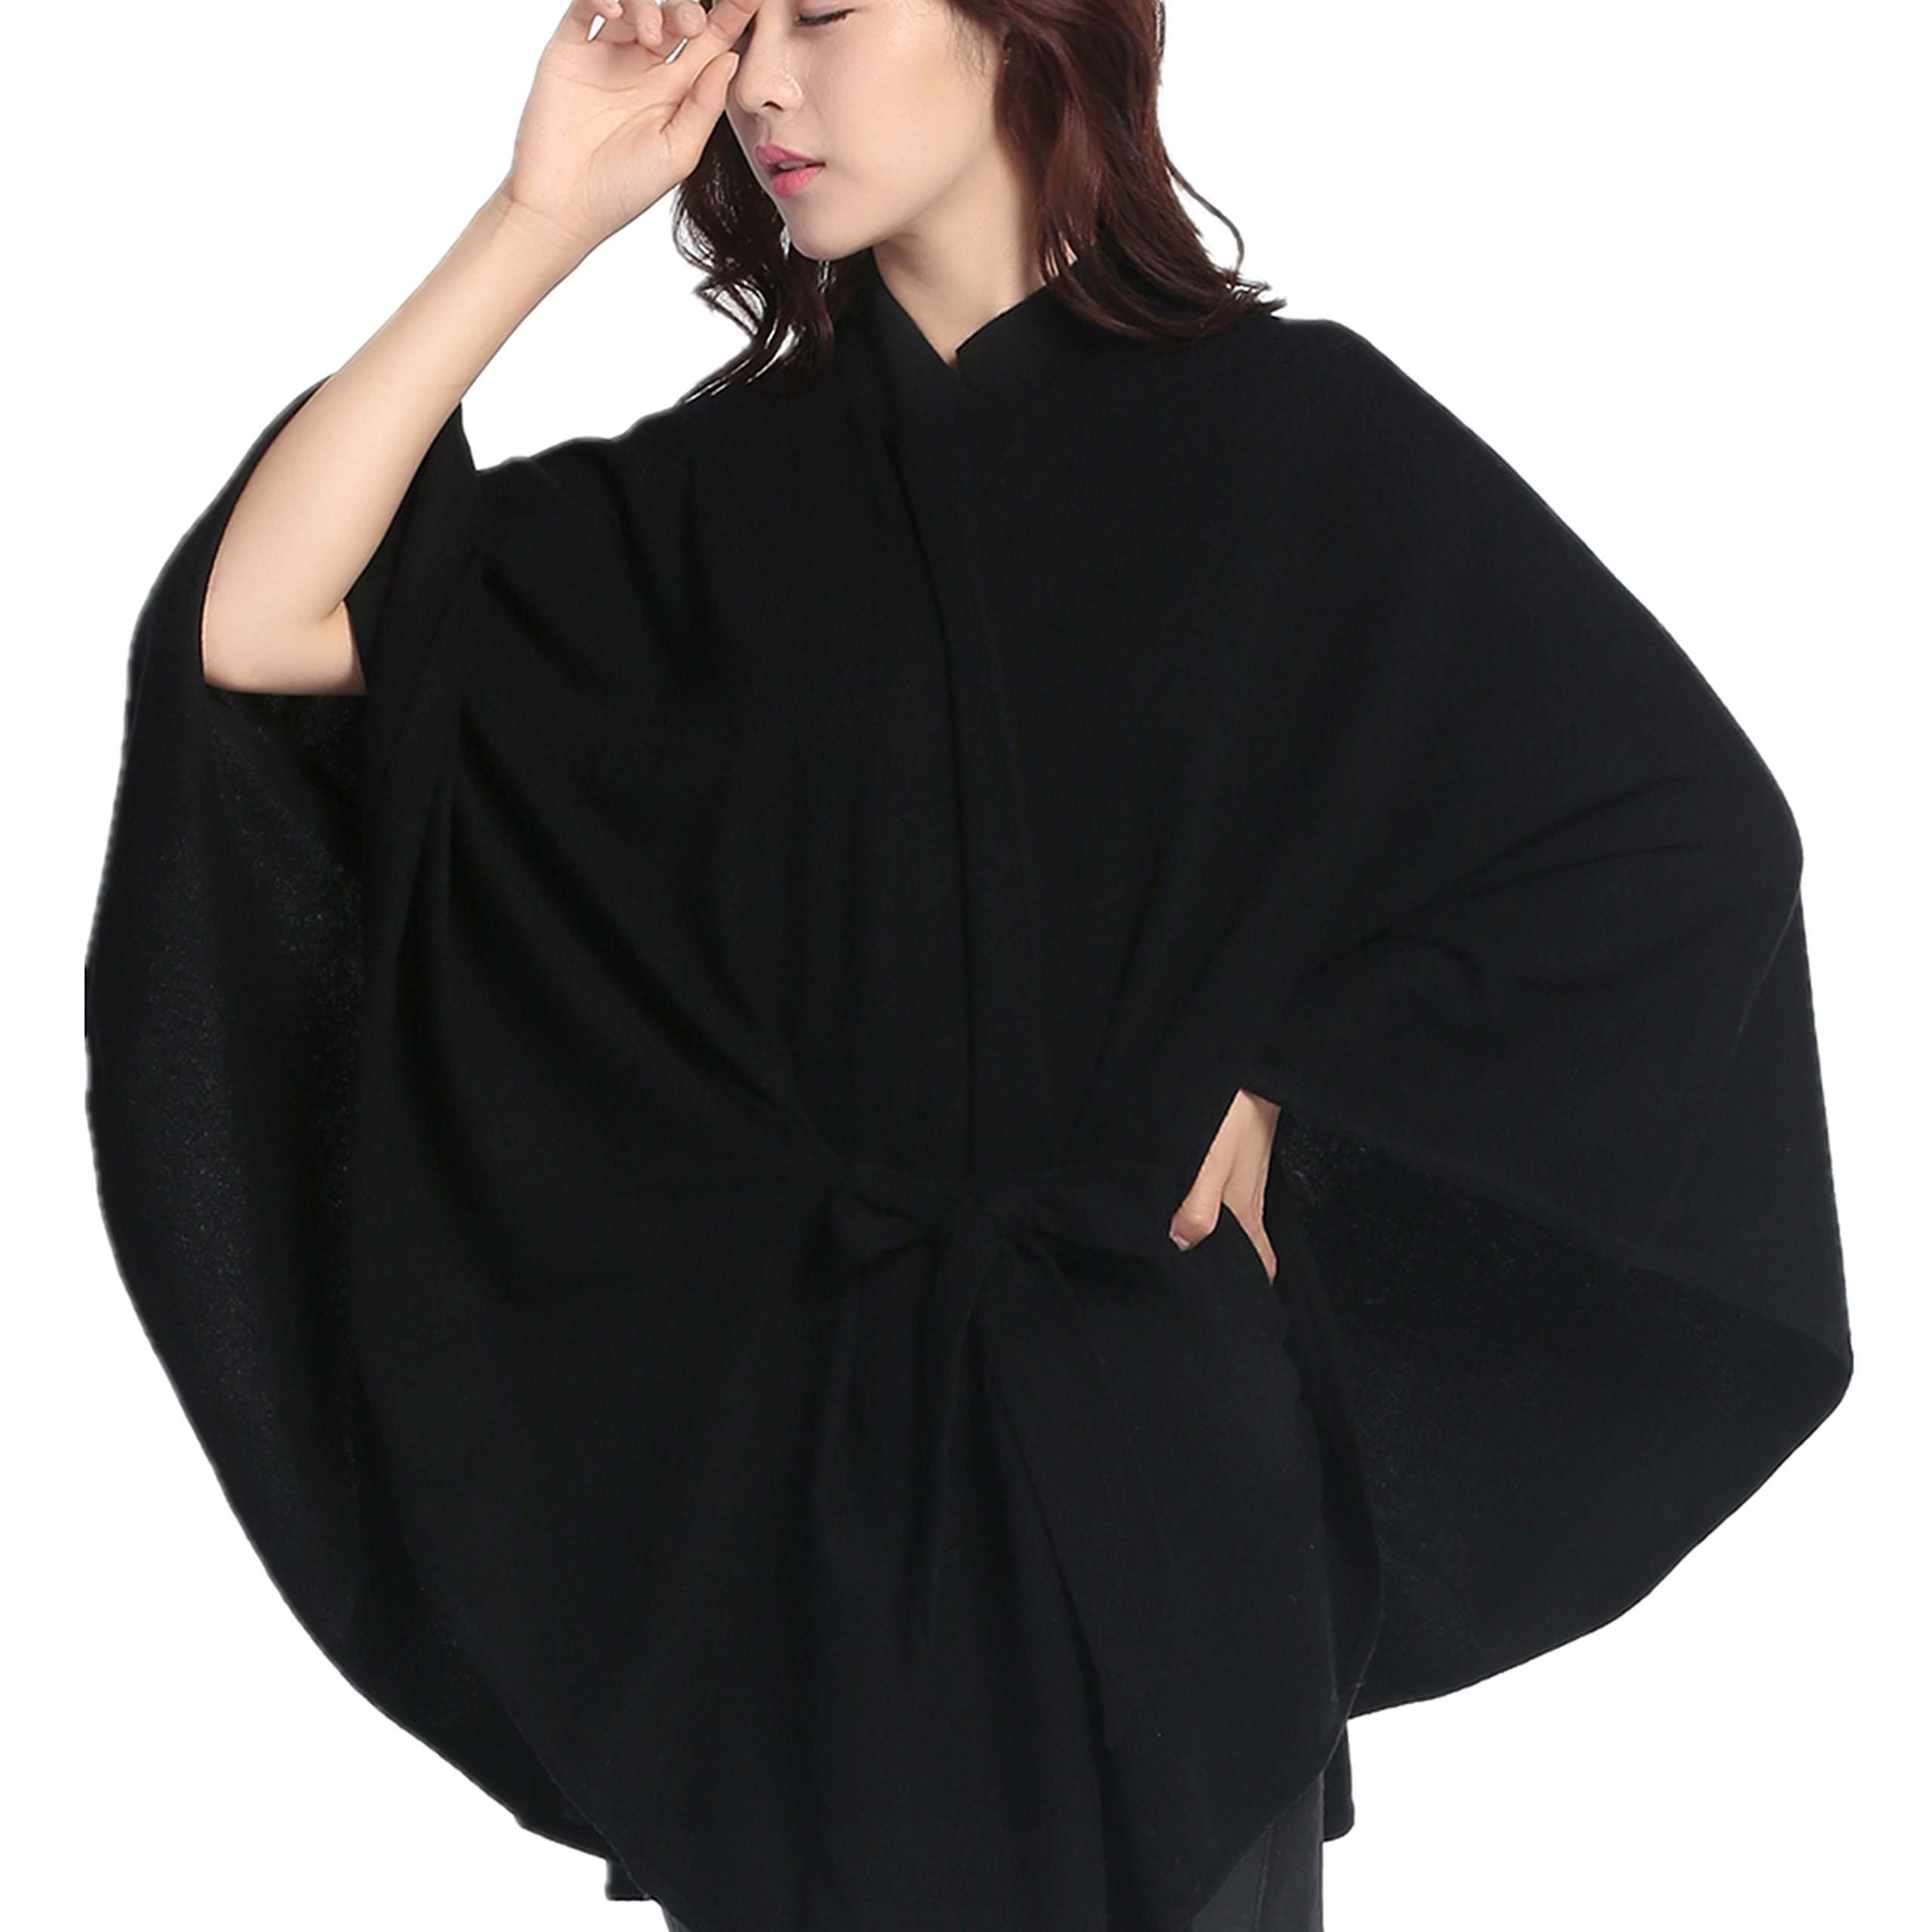 DILLY FASHION Women's Knitted Oversize Blanked Poncho Cape Shawl Long Cardigan Coat with Belt (Black)